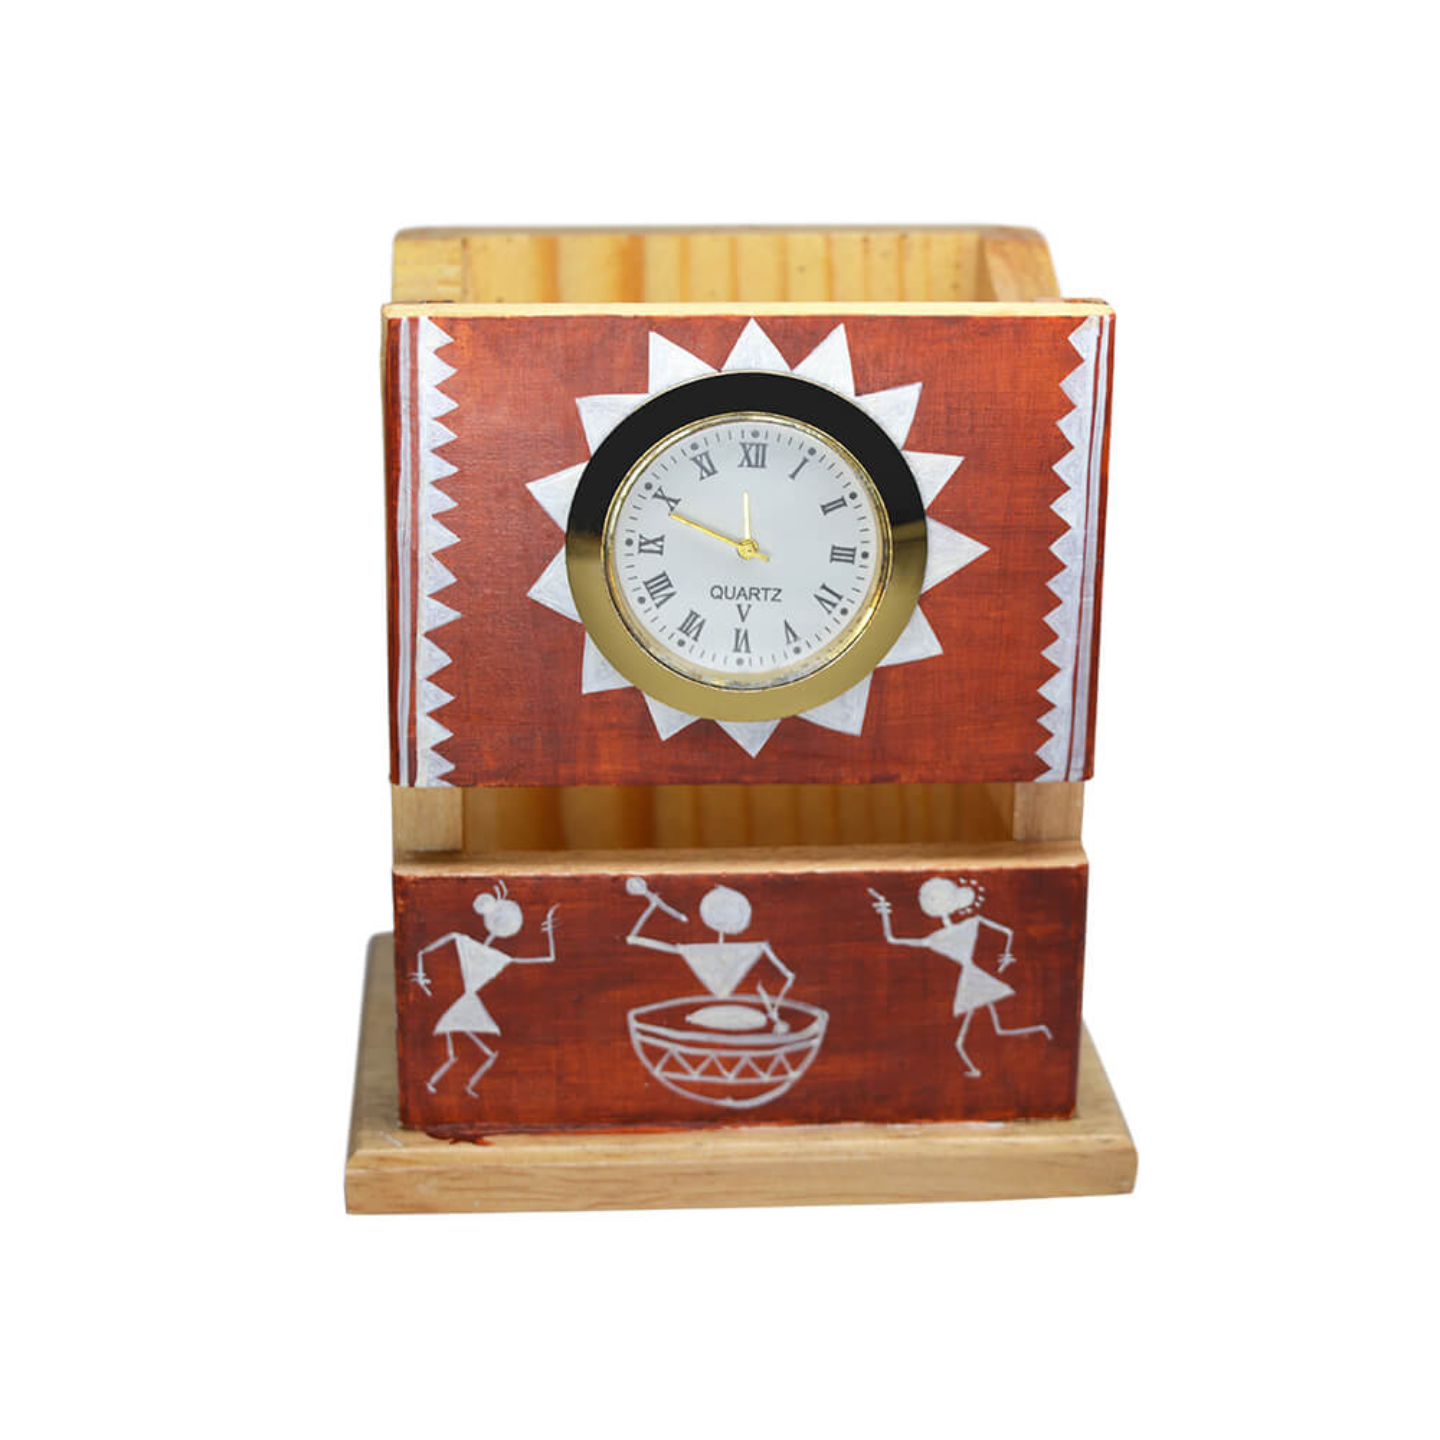 Pen stand with watch and beautiful warli art